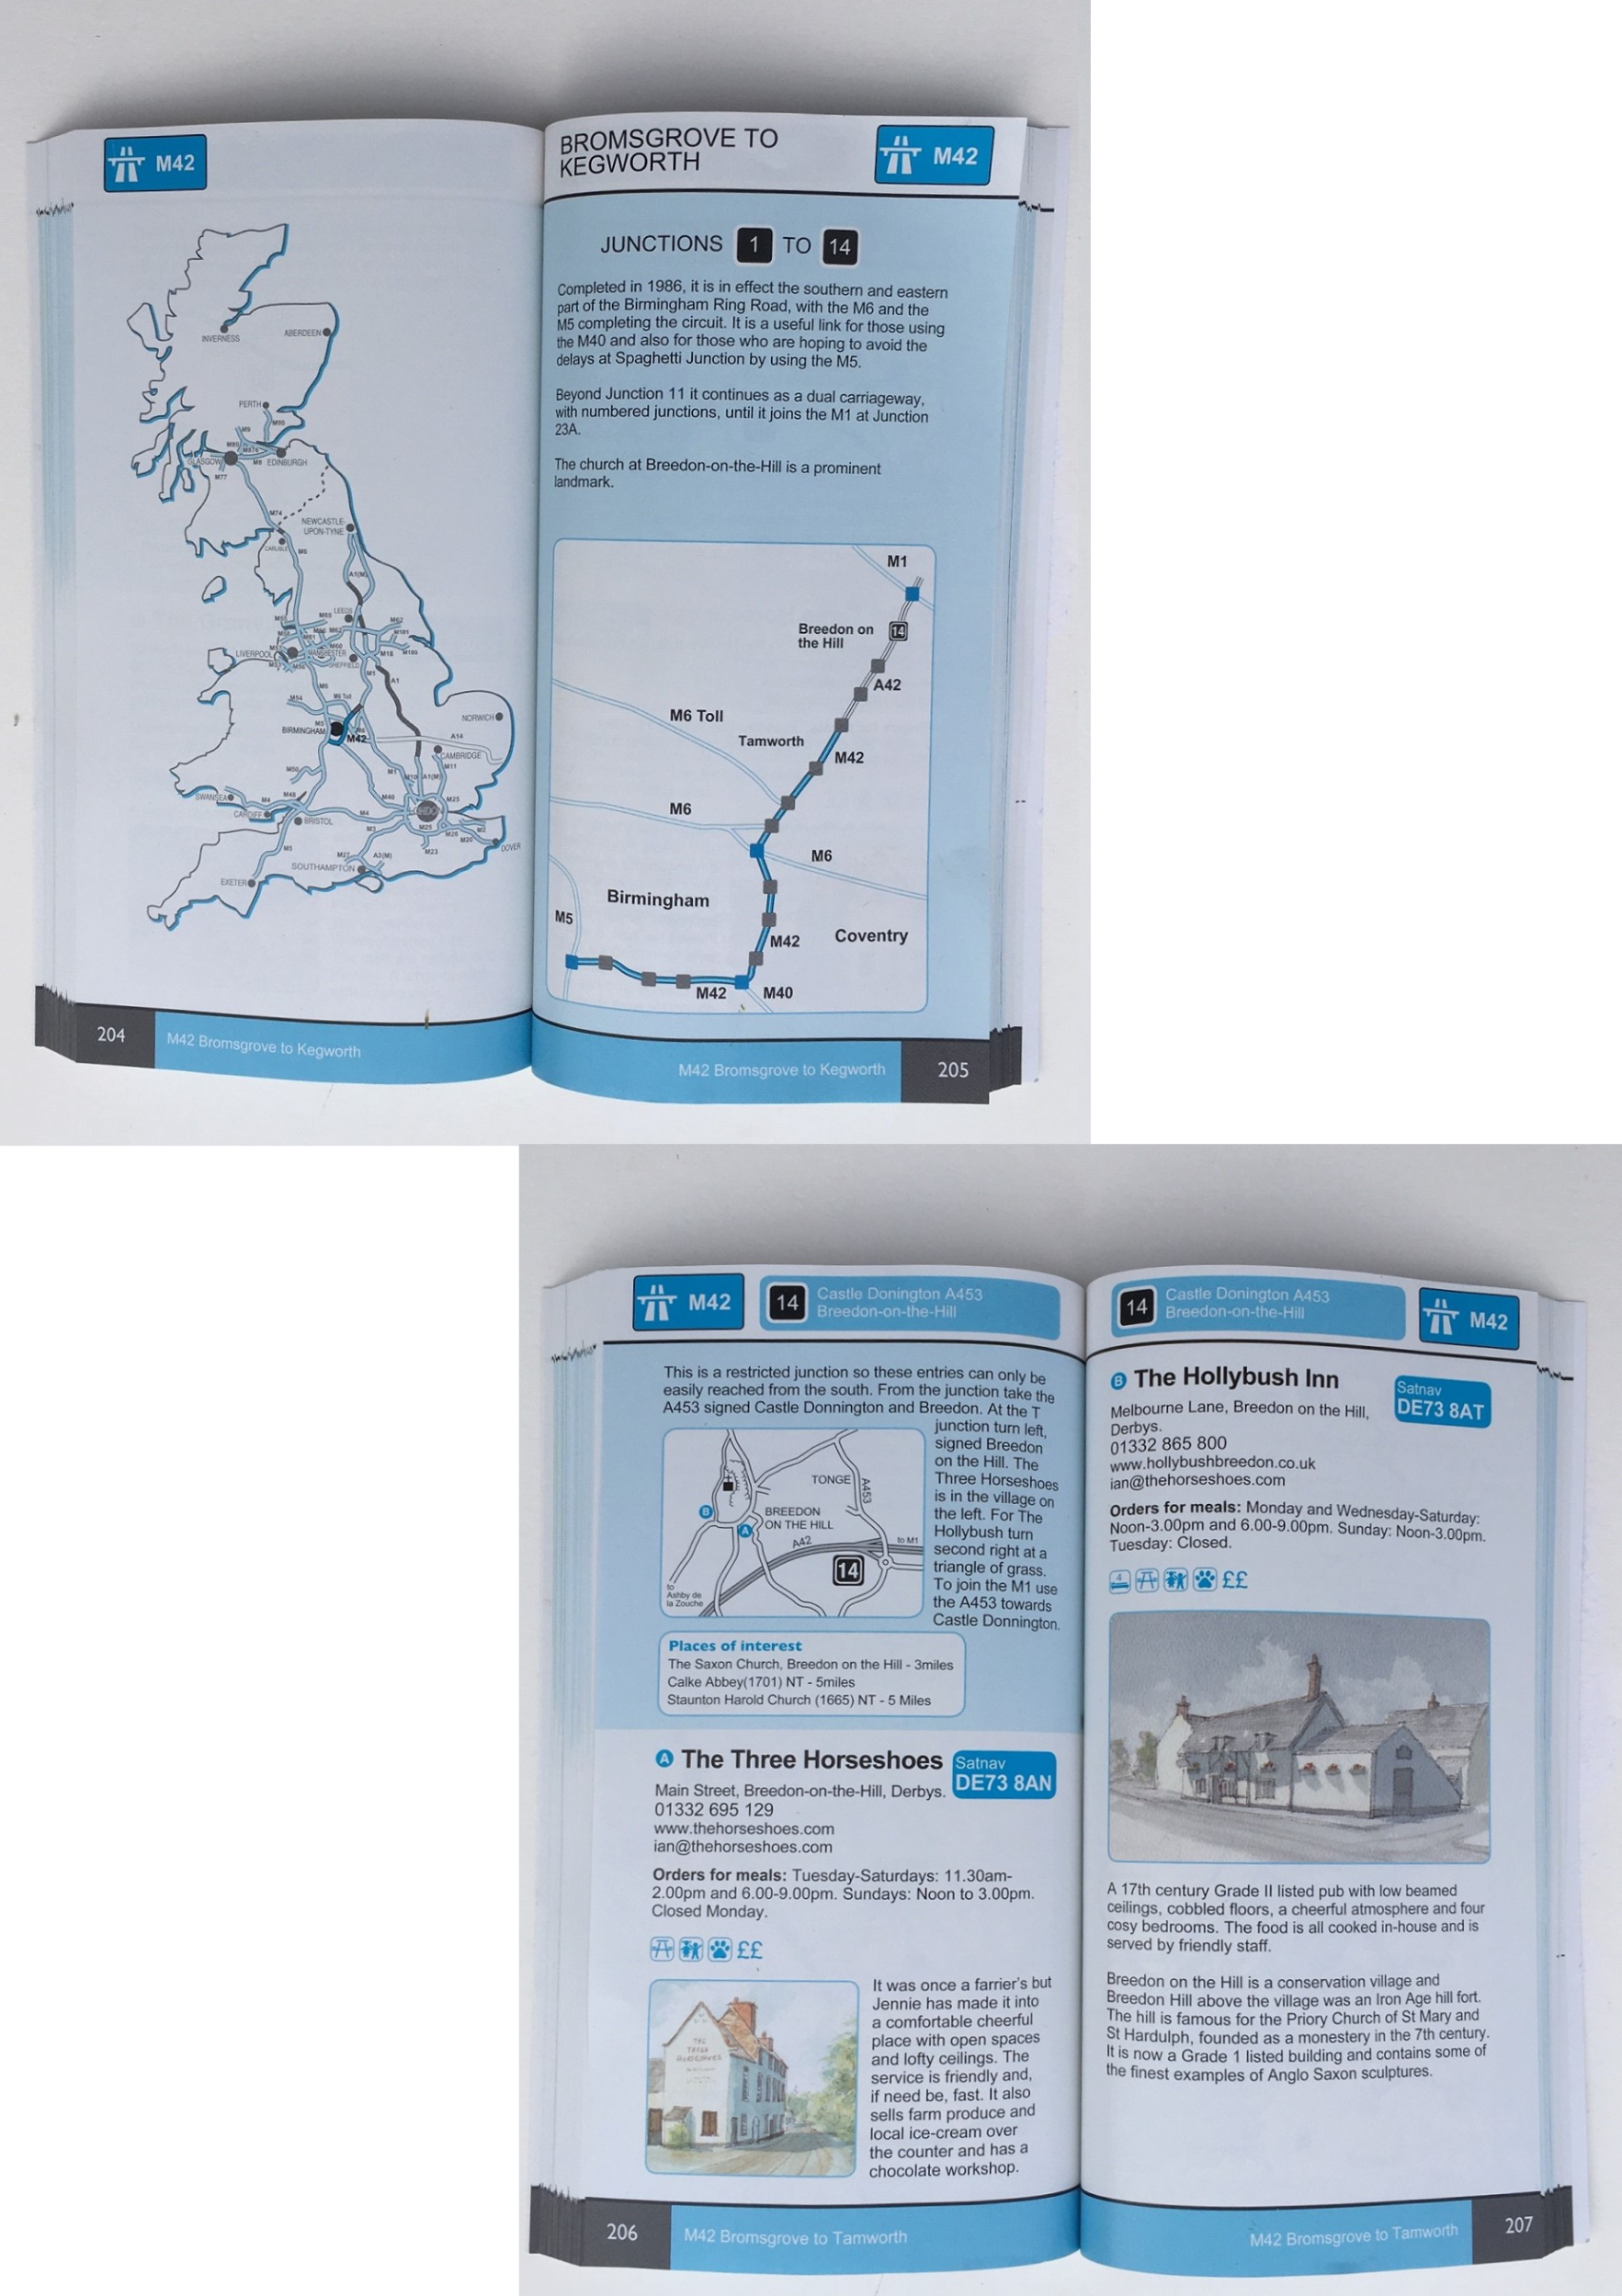 Near the motorways example pages